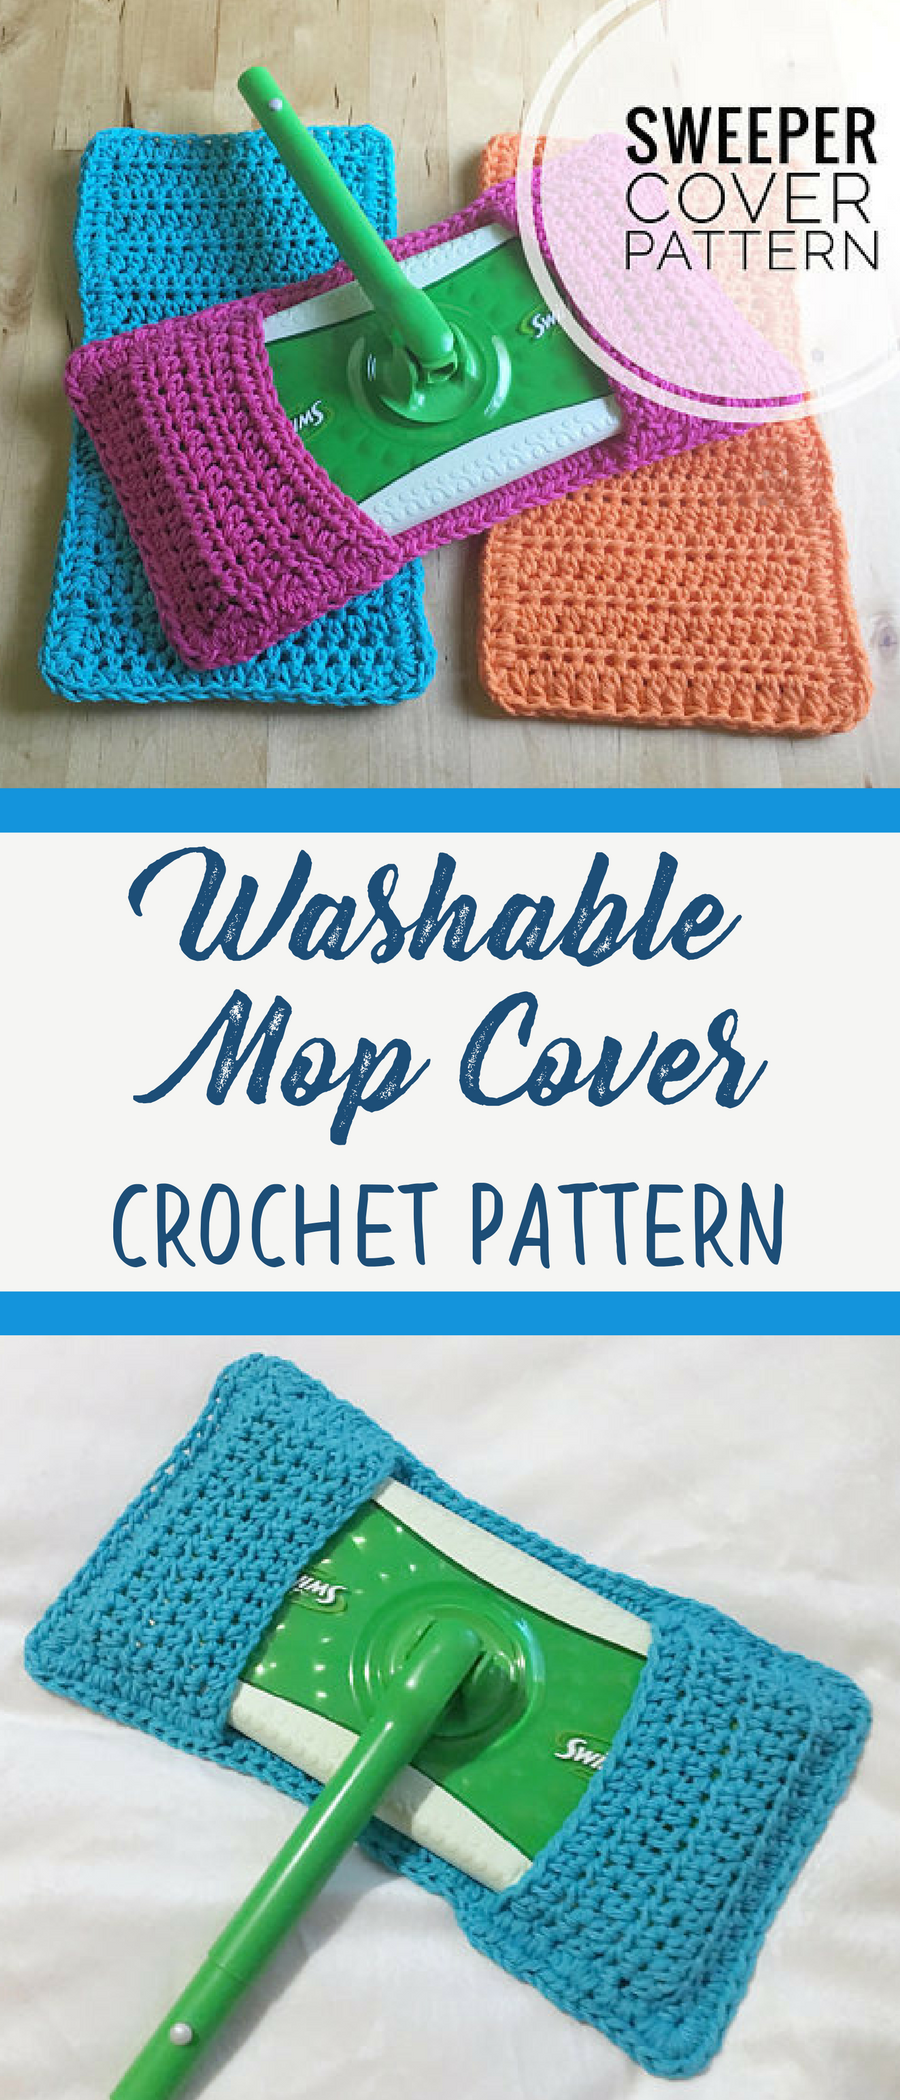 crochet mop covers for your swiffer sweeper i love this idea the pattern is - Hakelmutzen Muster